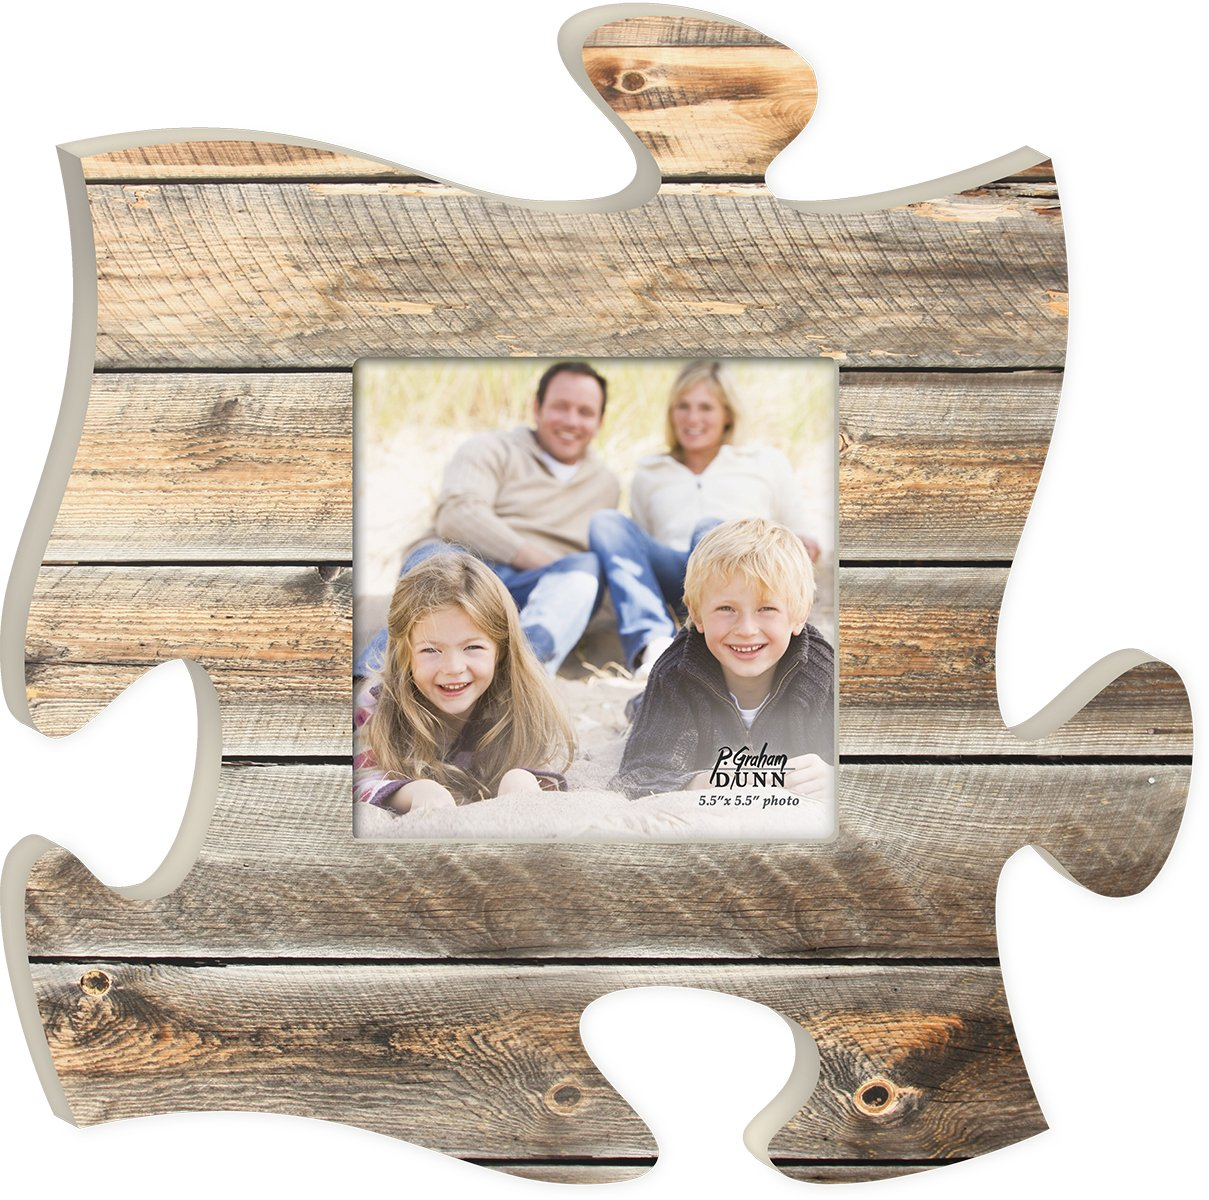 Distressed Light Wood Look 12 x 12 inch Wood Puzzle Piece Wall Sign Frame Plaque